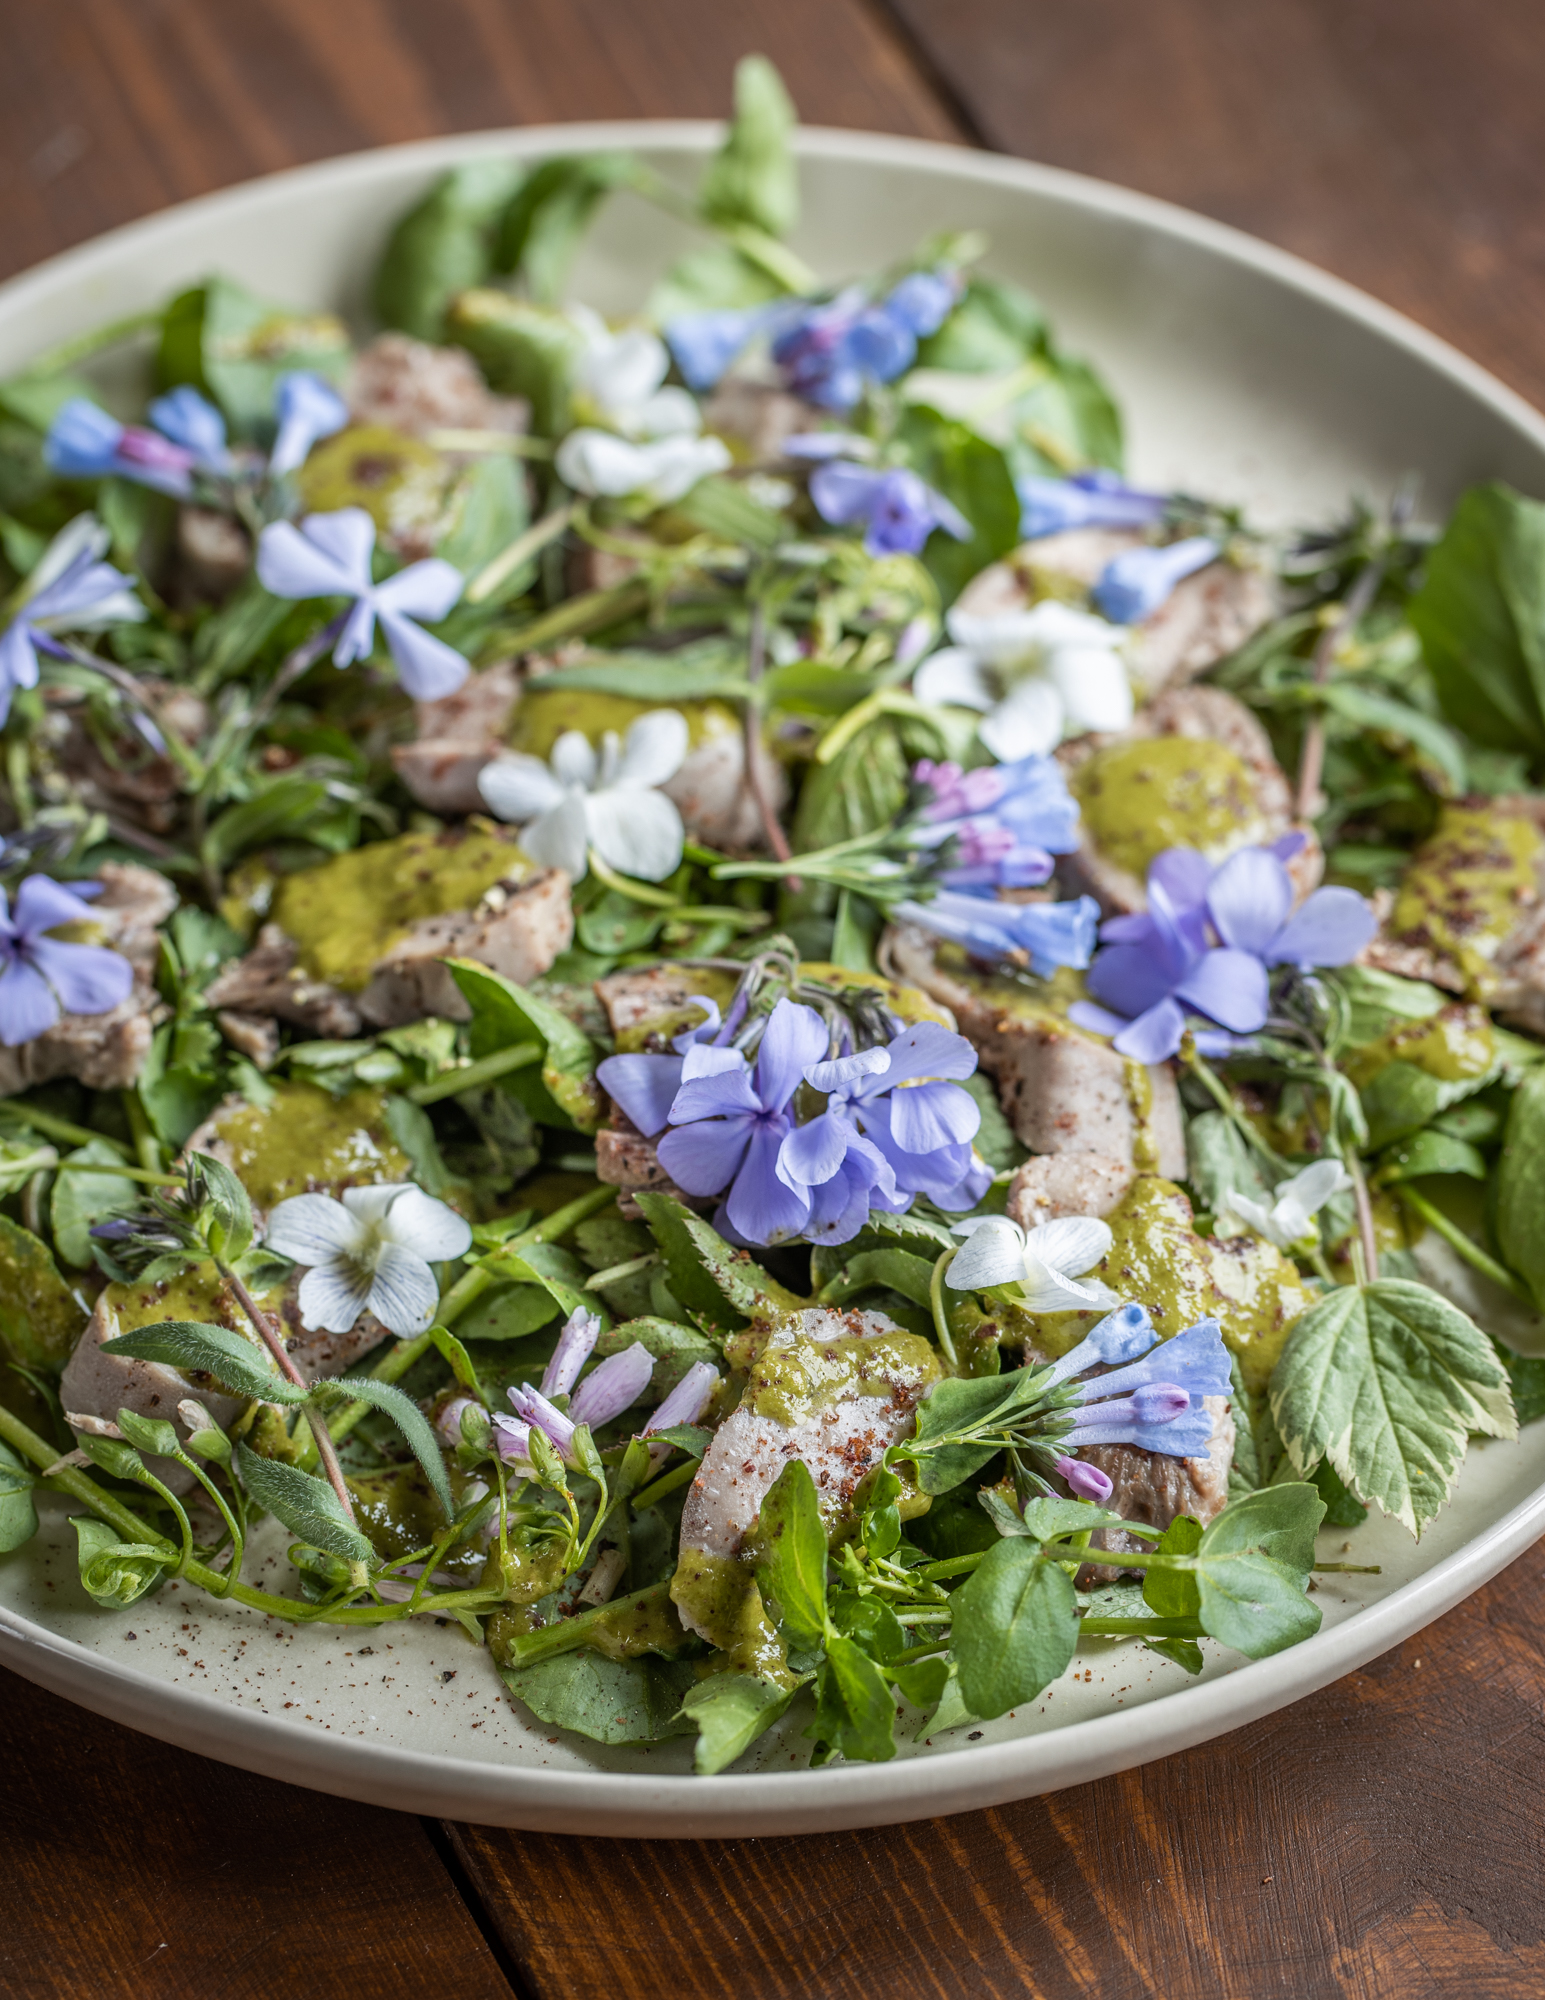 Goat tongue salad with salsa verde, fresh greens and wildflowers